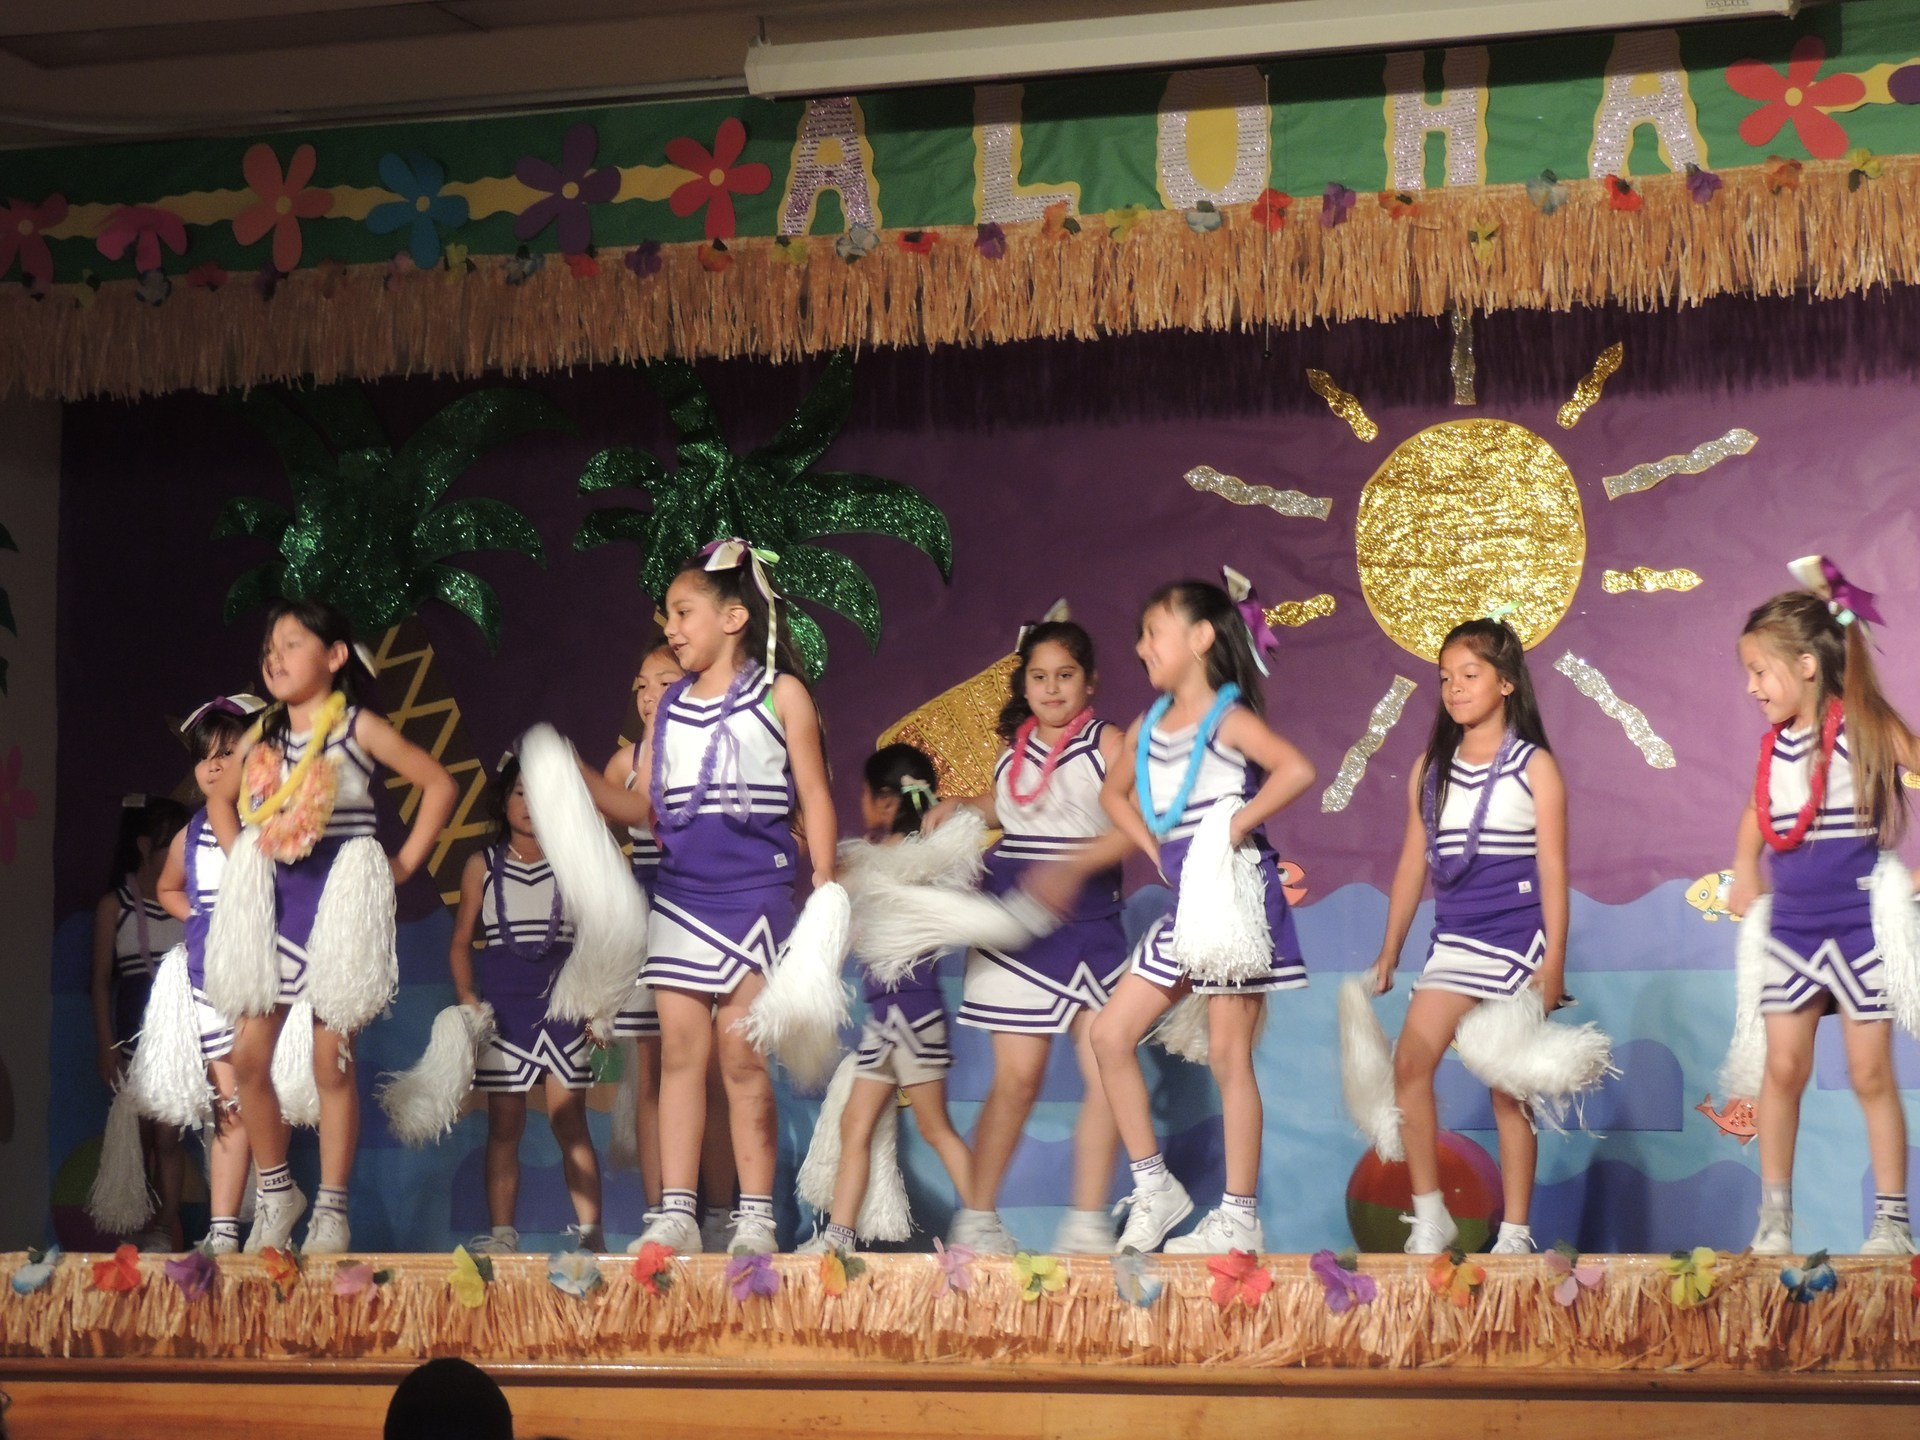 Cheerleaders performing.